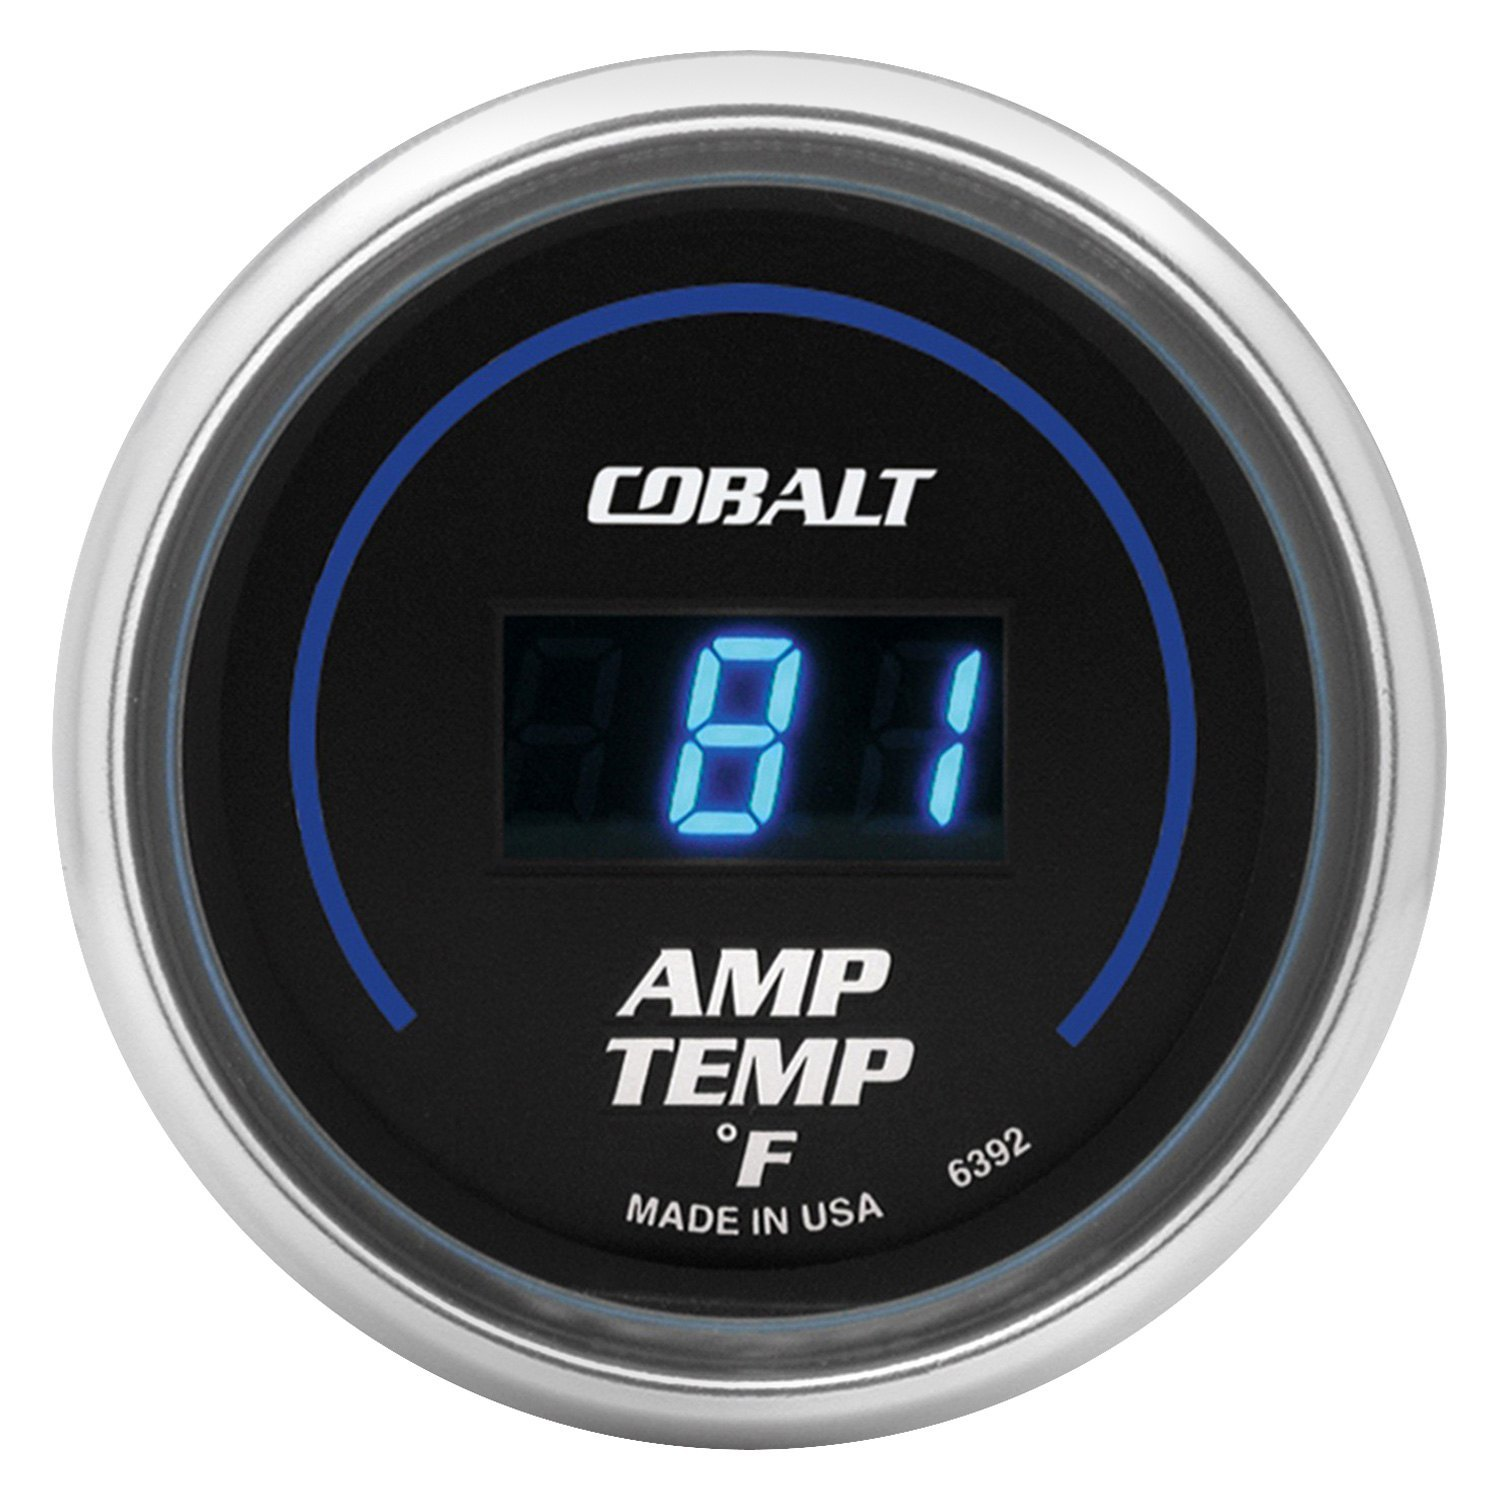 Auto Meter 6392 Cobalt Digital Series 2 1 16 Amplifier Temperature Gauge 0 250 F